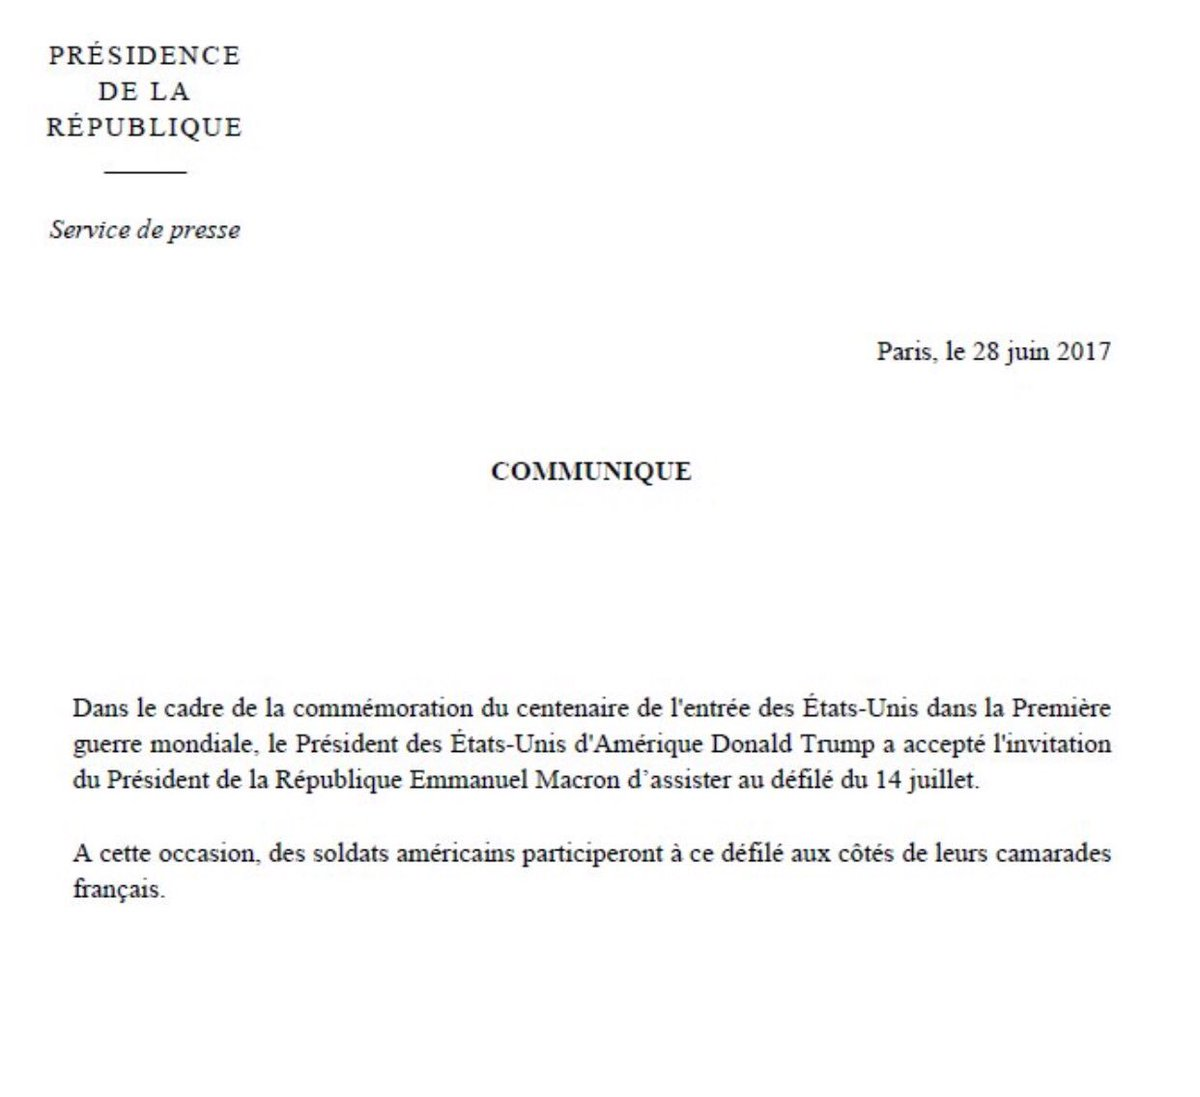 July 14 visit by @POTUS to #France confirmed by office of President. @EmmanuelMacron.